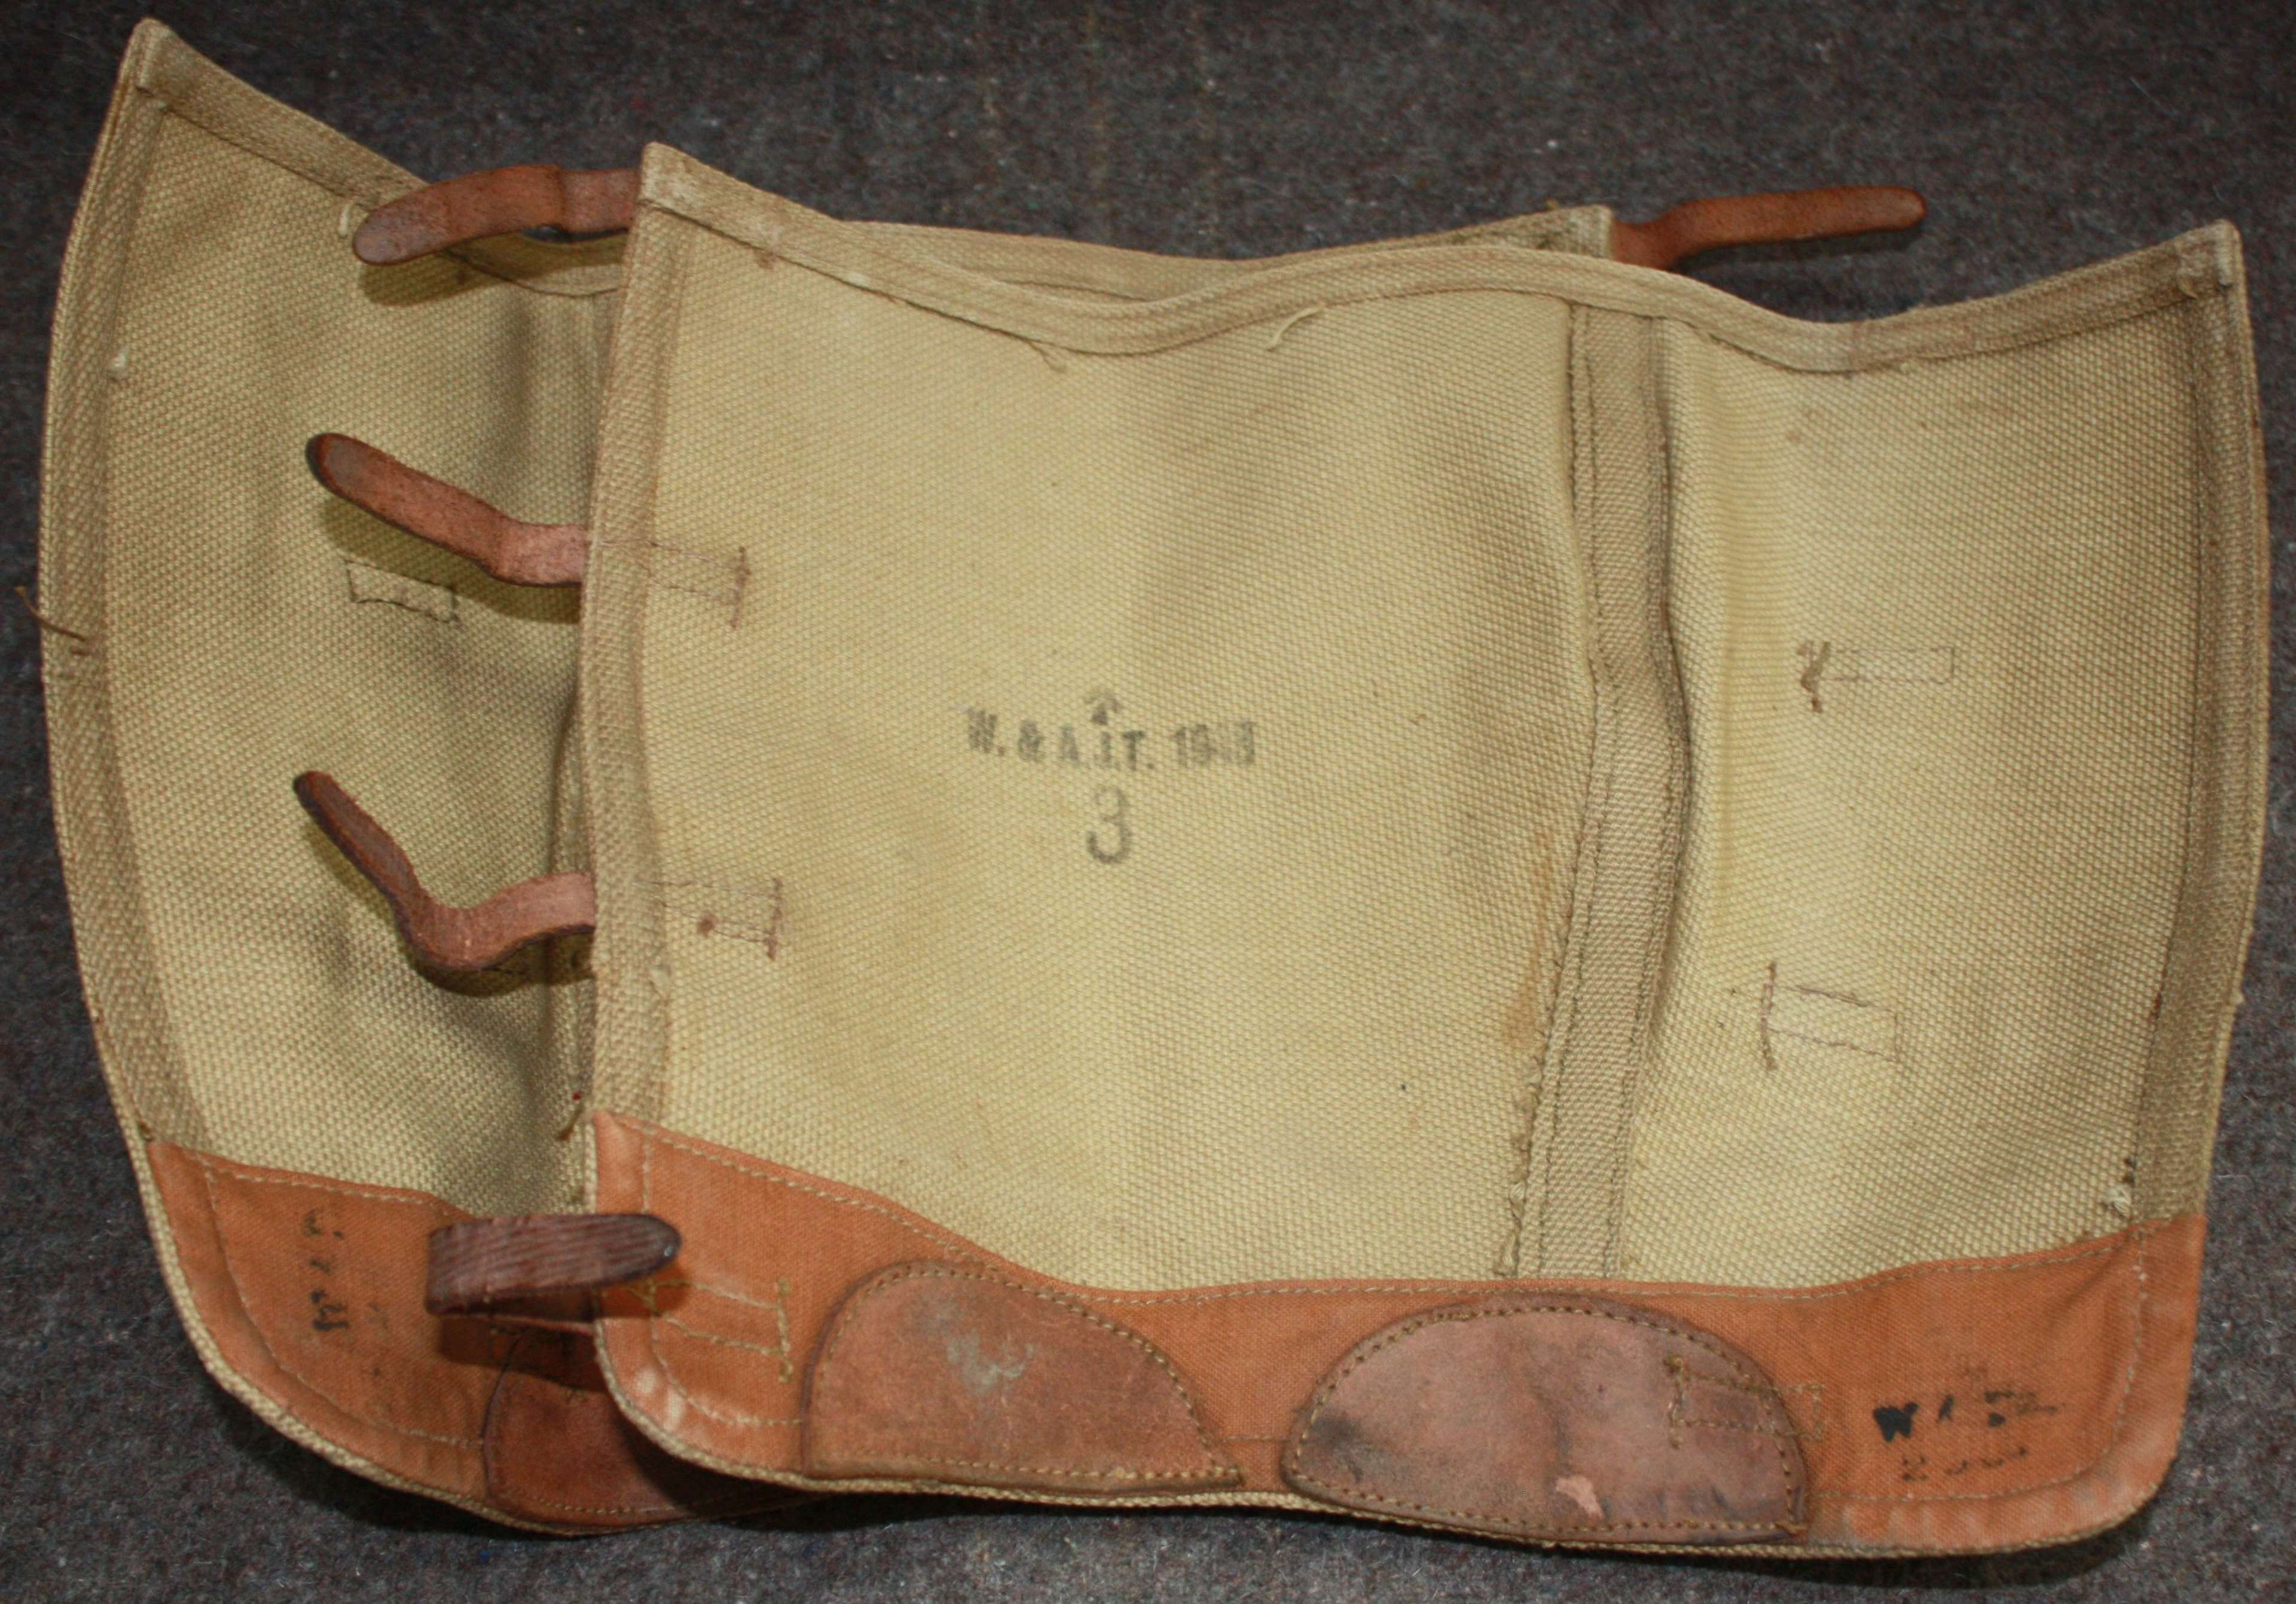 A PAIR OF 1943 DATED 4 STRAP GAITERS SIZE 3